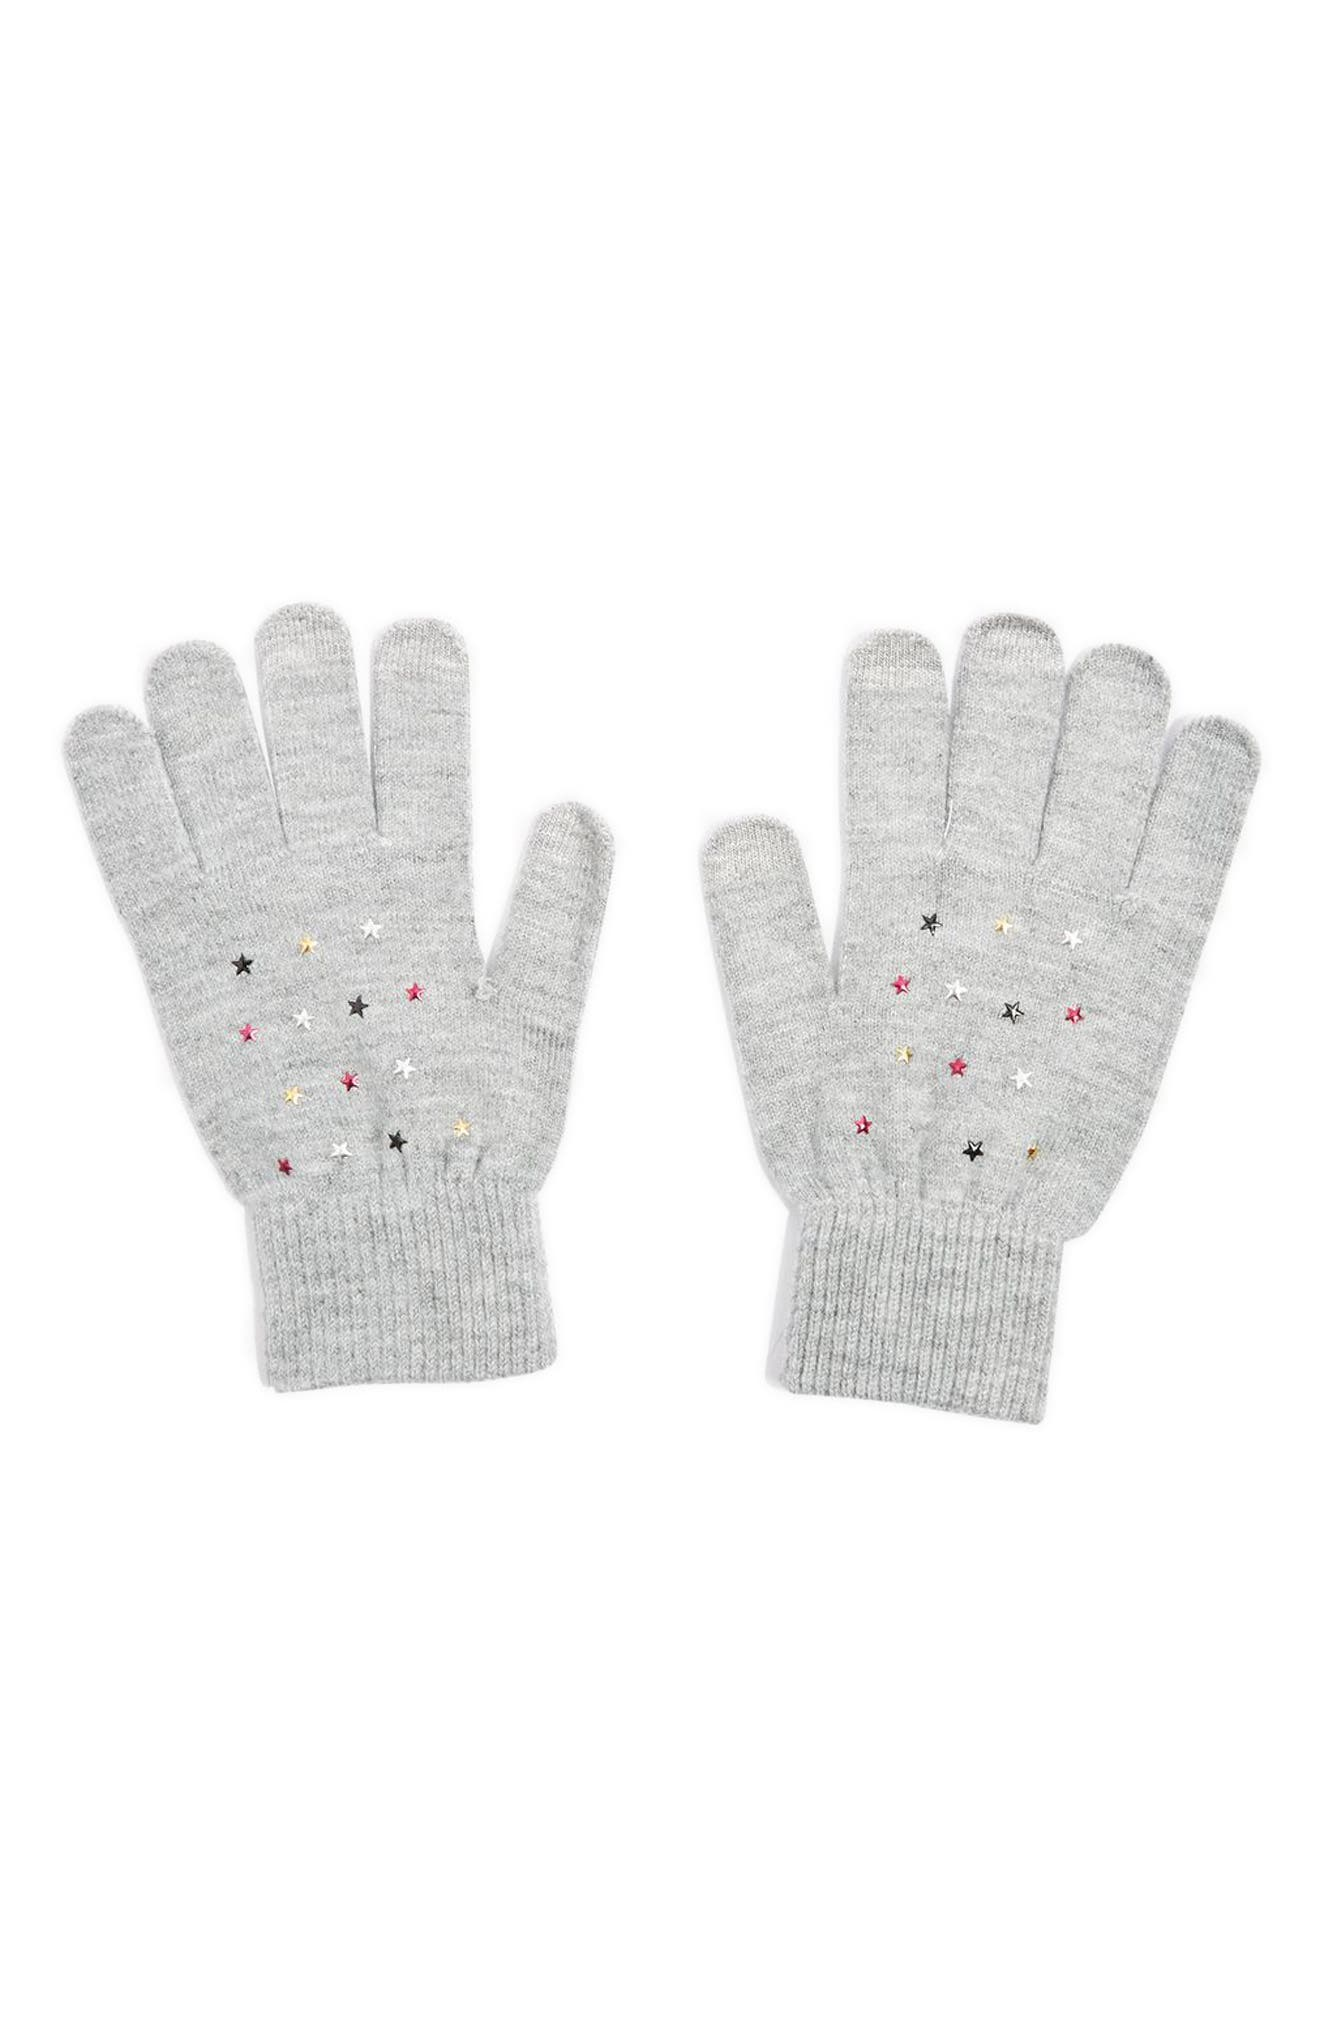 Knit Star Gloves,                         Main,                         color,